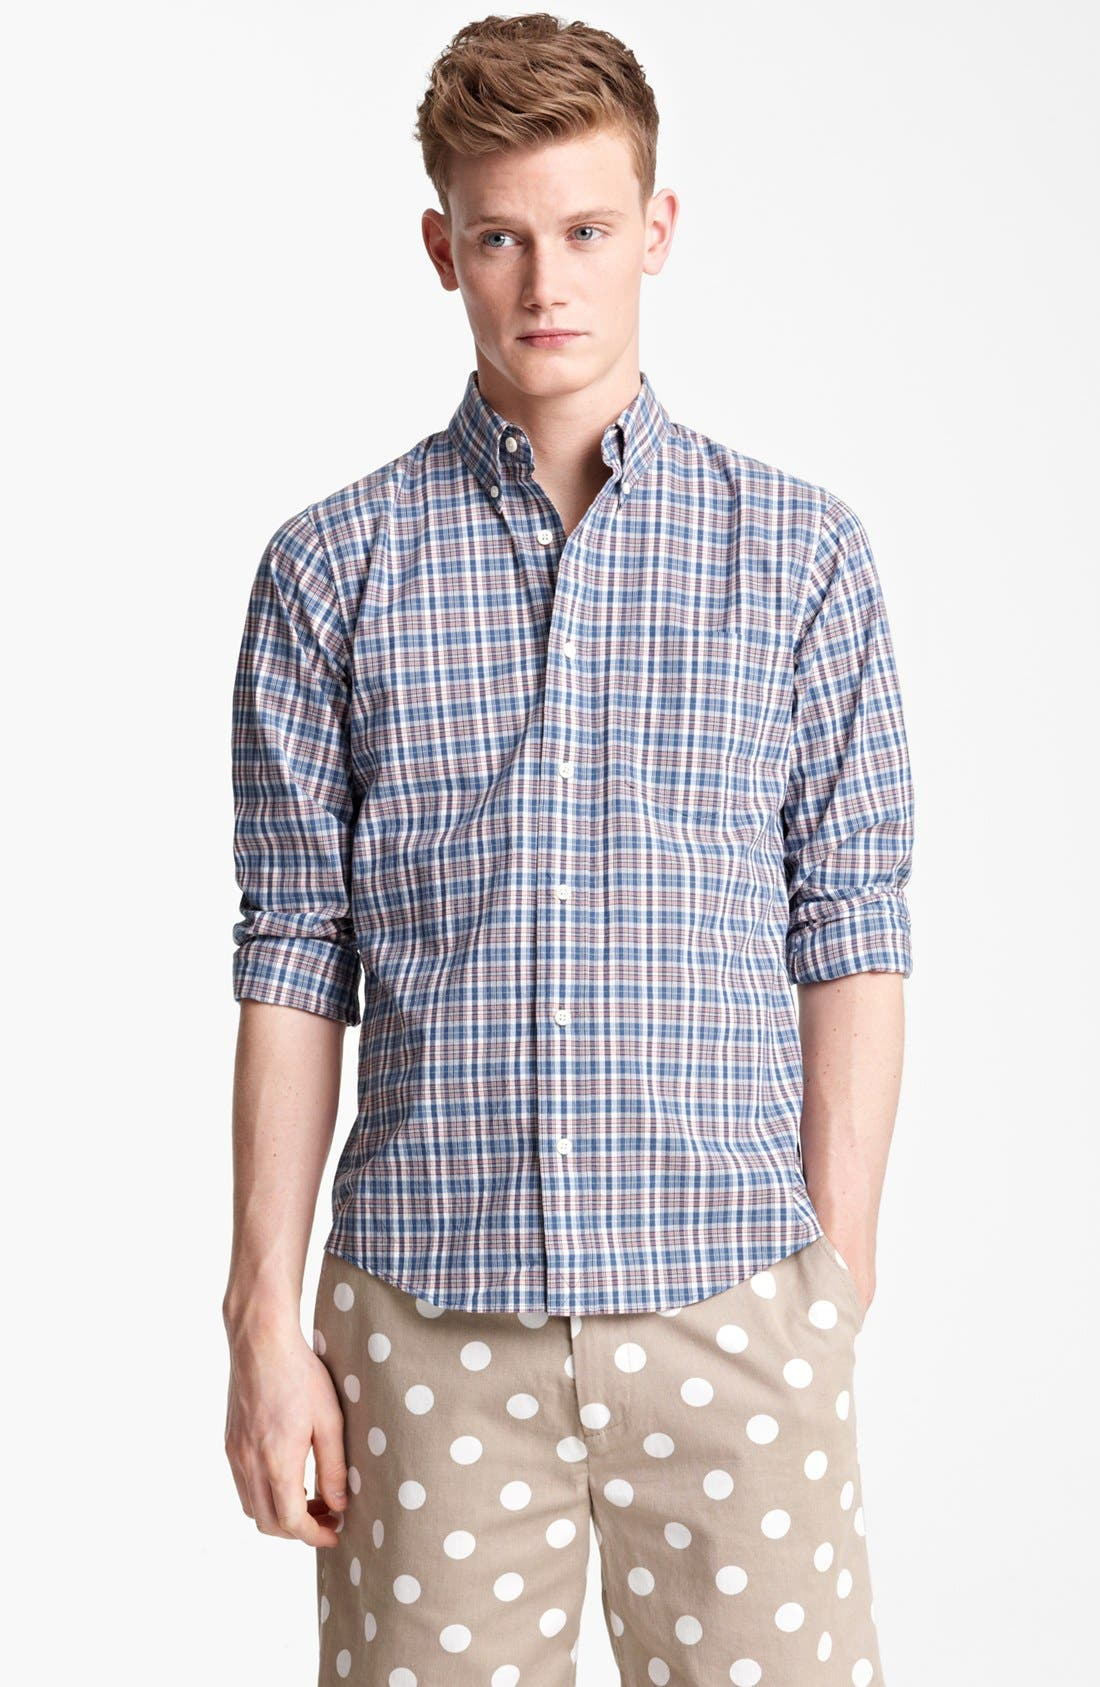 Alternate Image 1 Selected - Jack Spade 'Serge' Plaid Sport Shirt